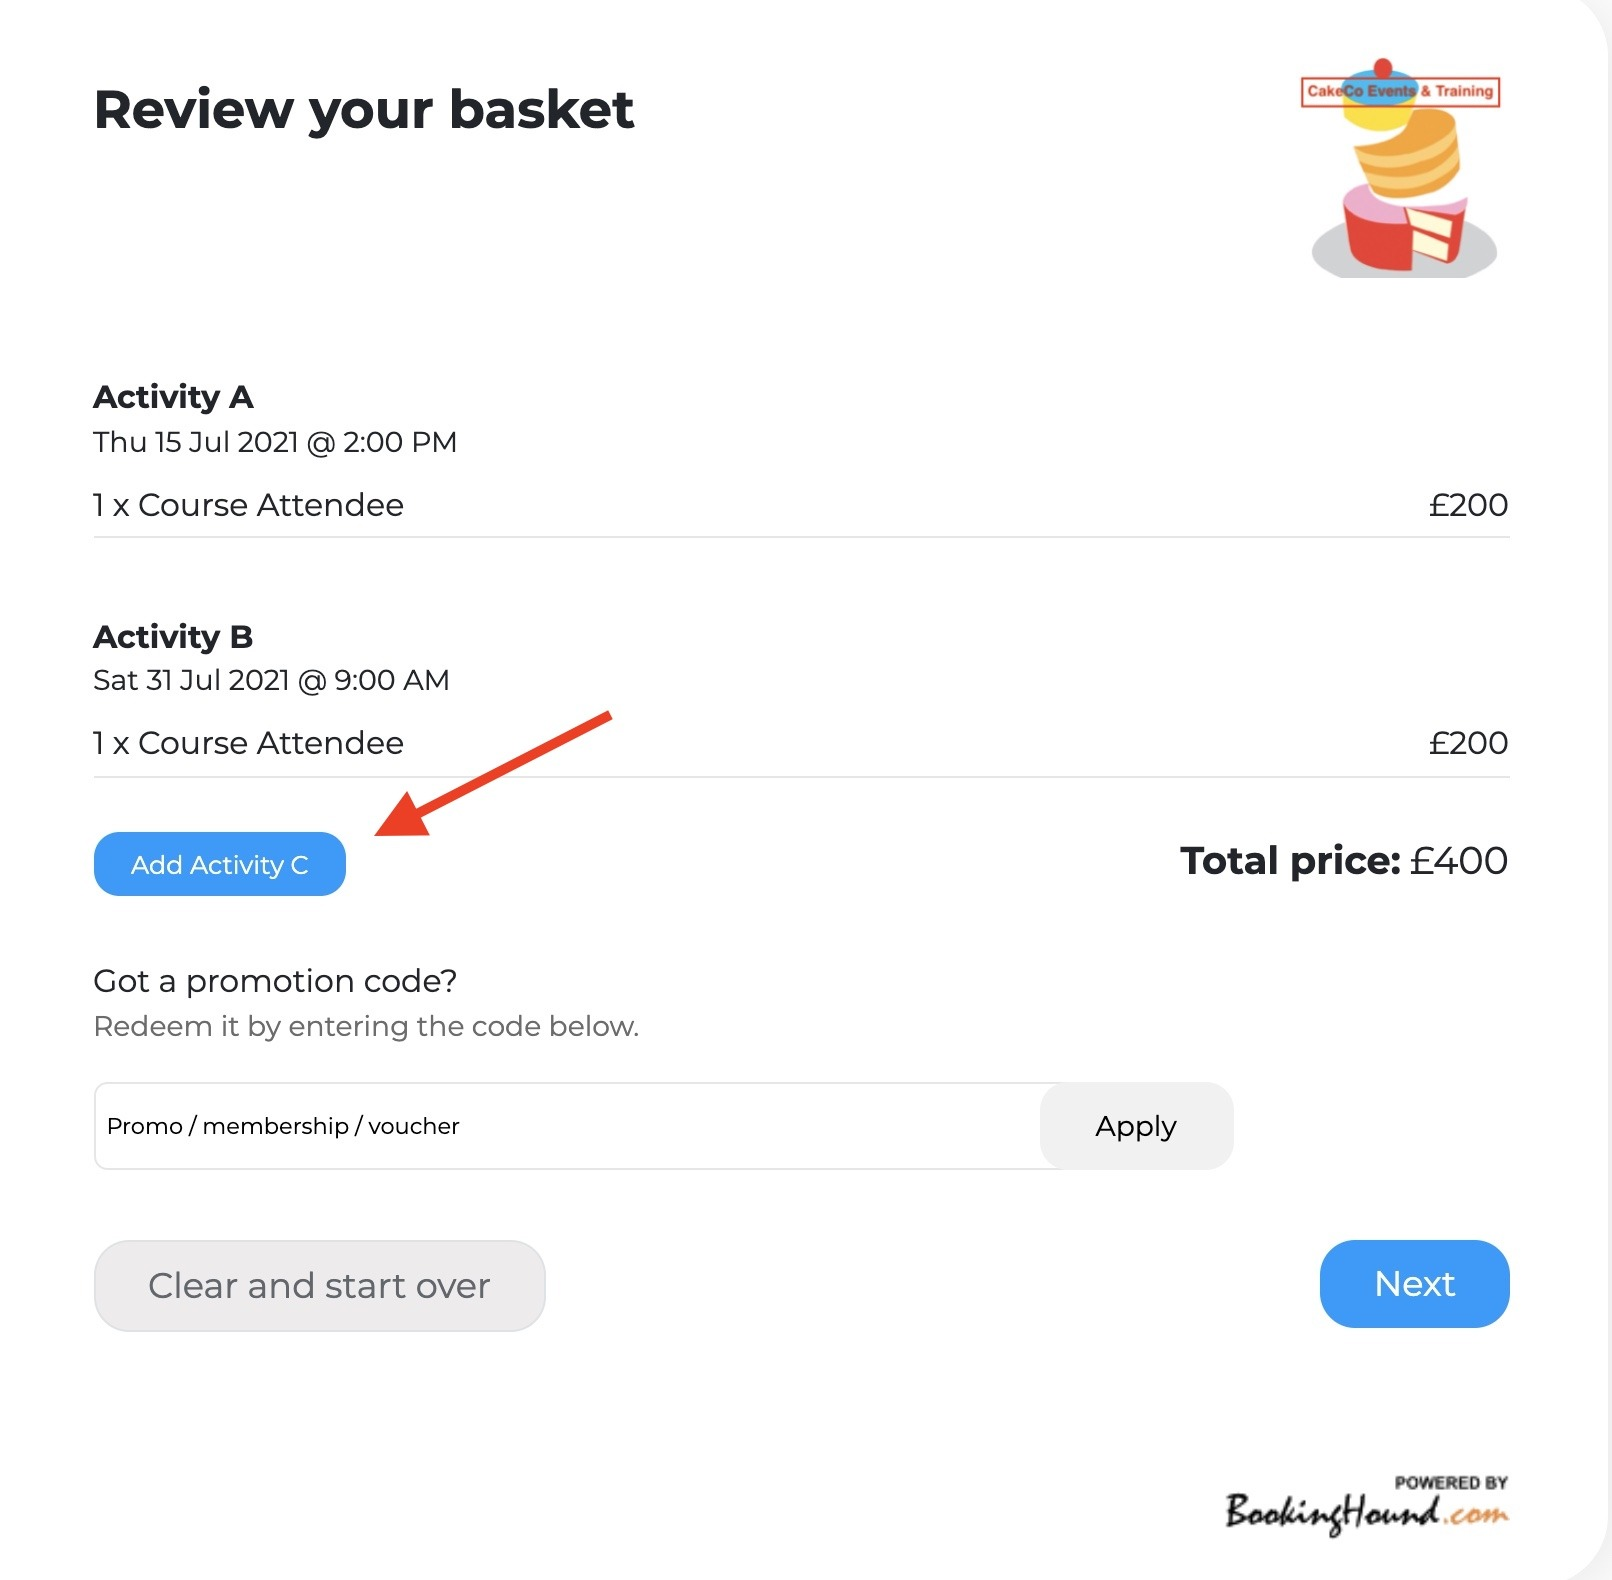 Review Your Basket Additional Activities Screen